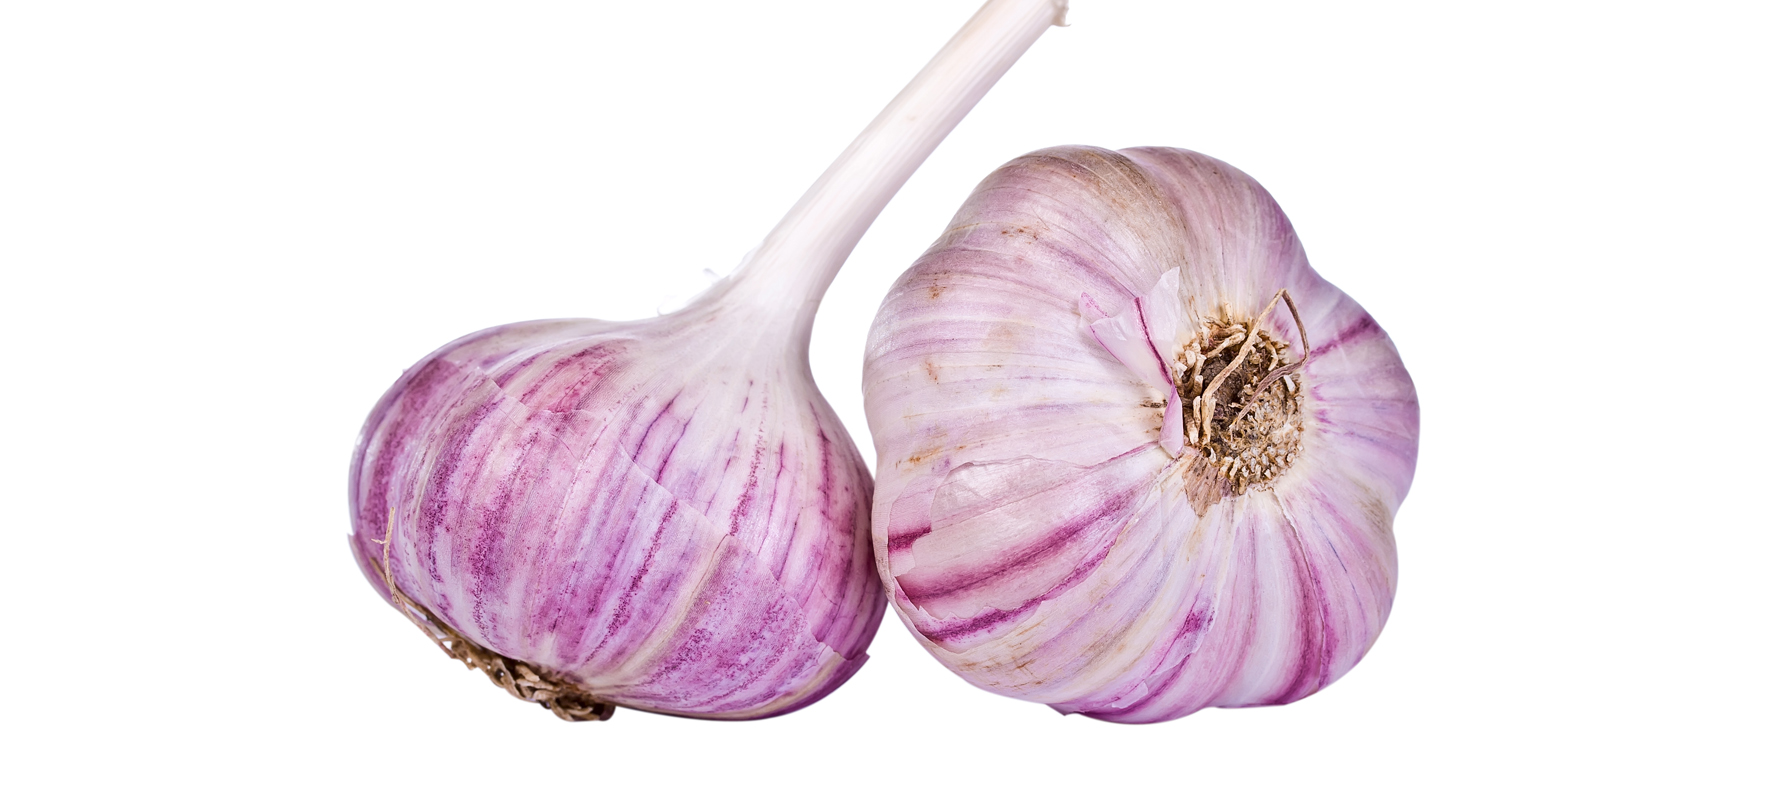 Allium Cepa Onion Bulb Extract uses in natural skin care products.